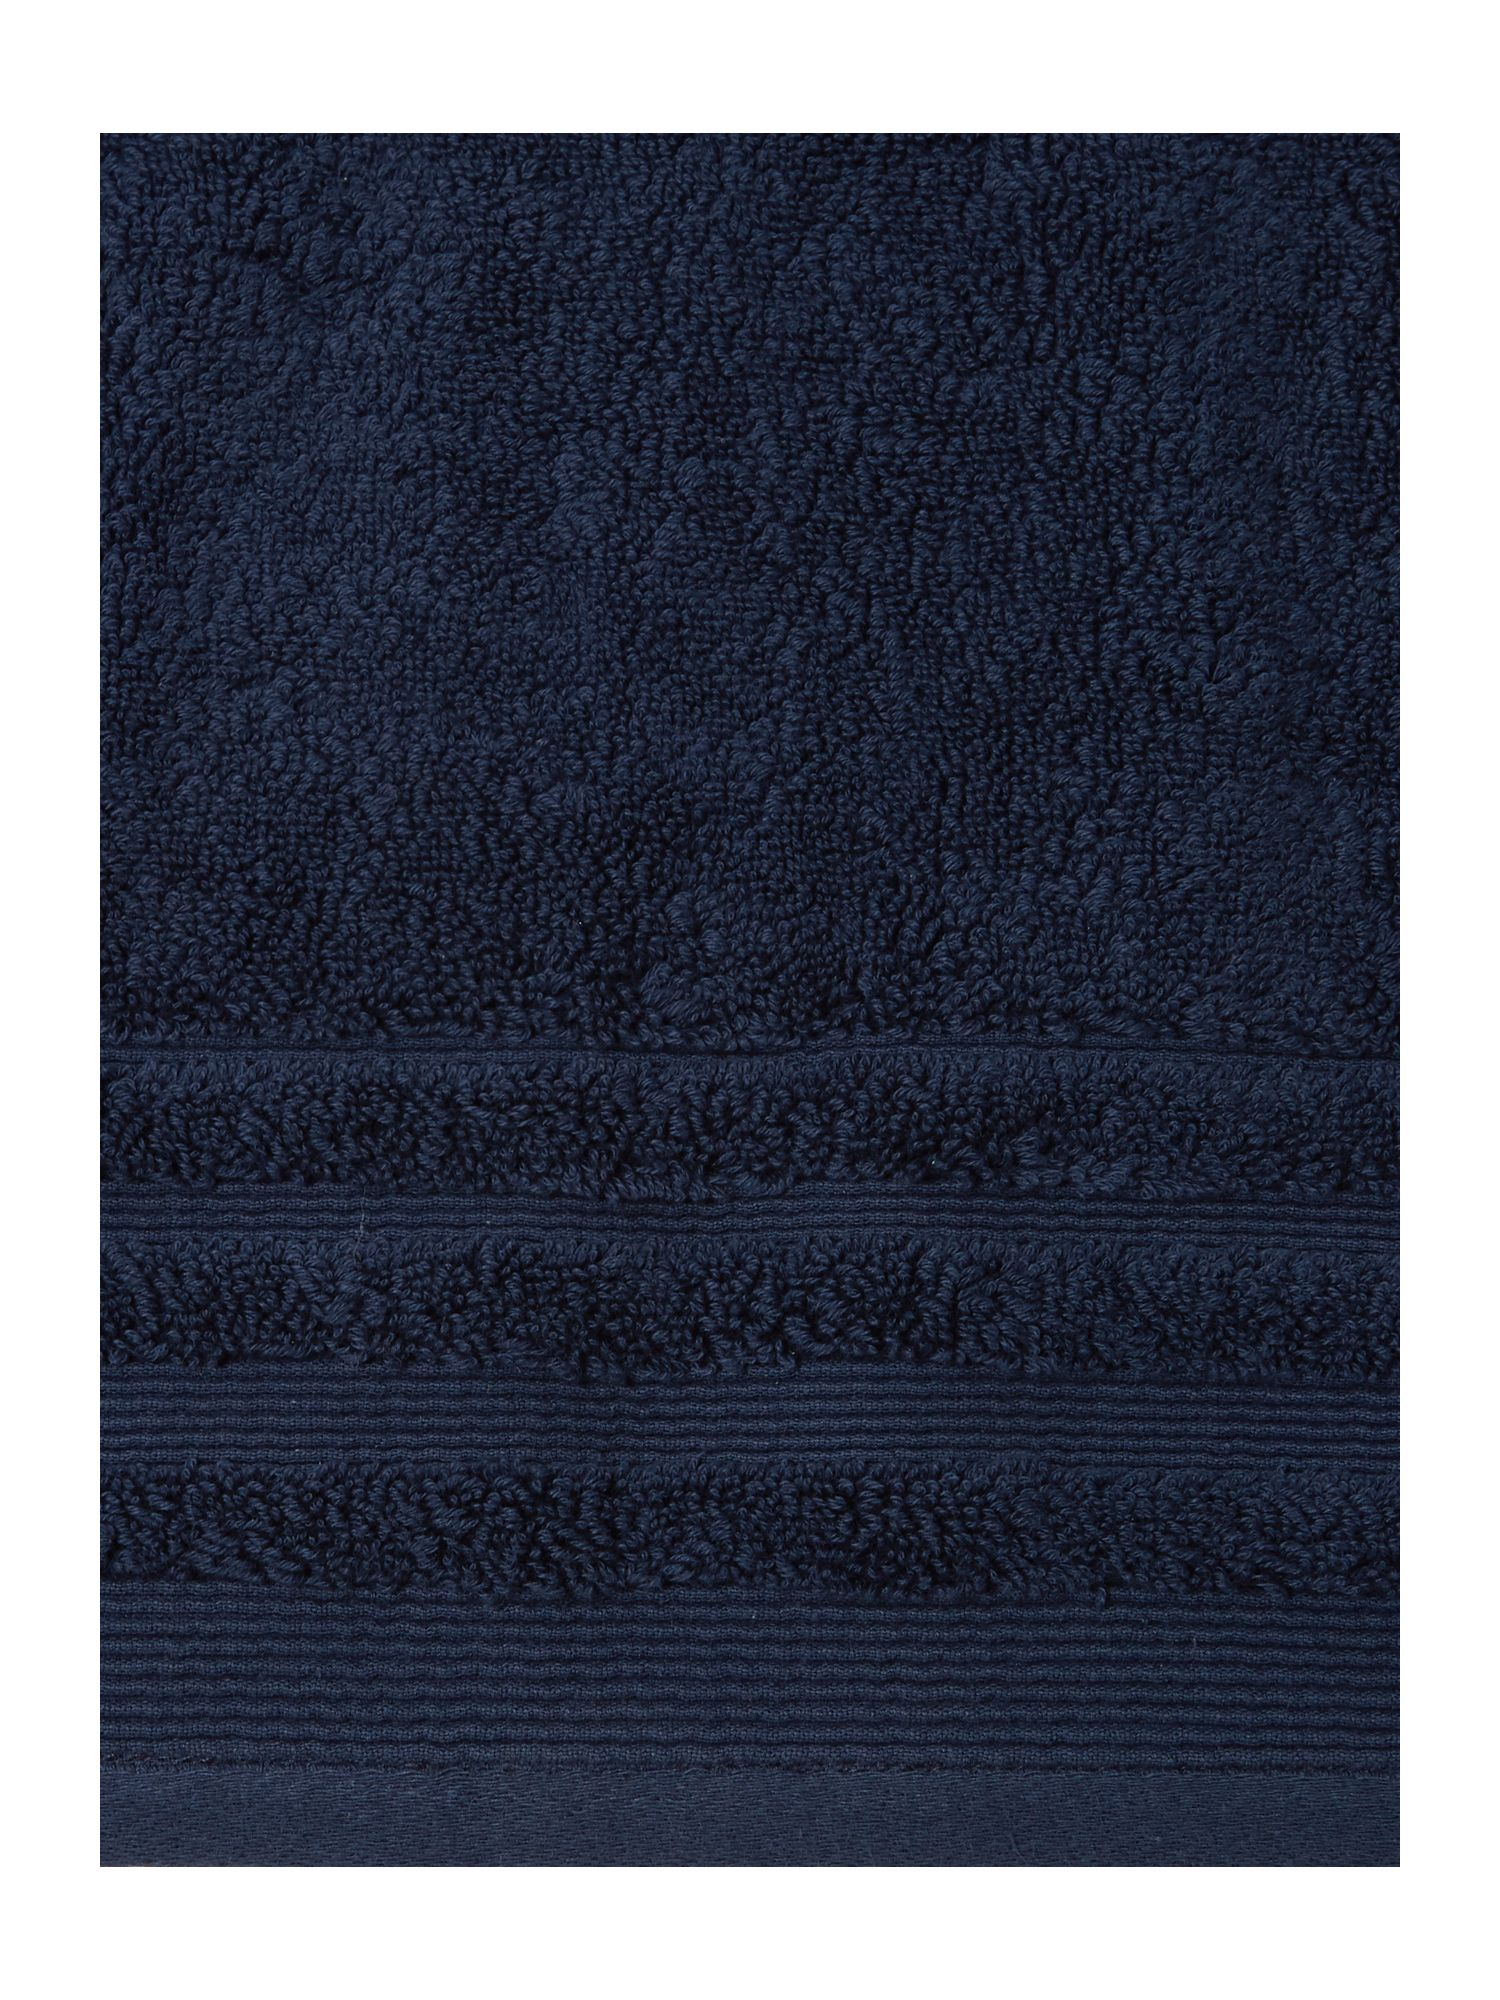 Classic Luxury Towel Range In Midnight